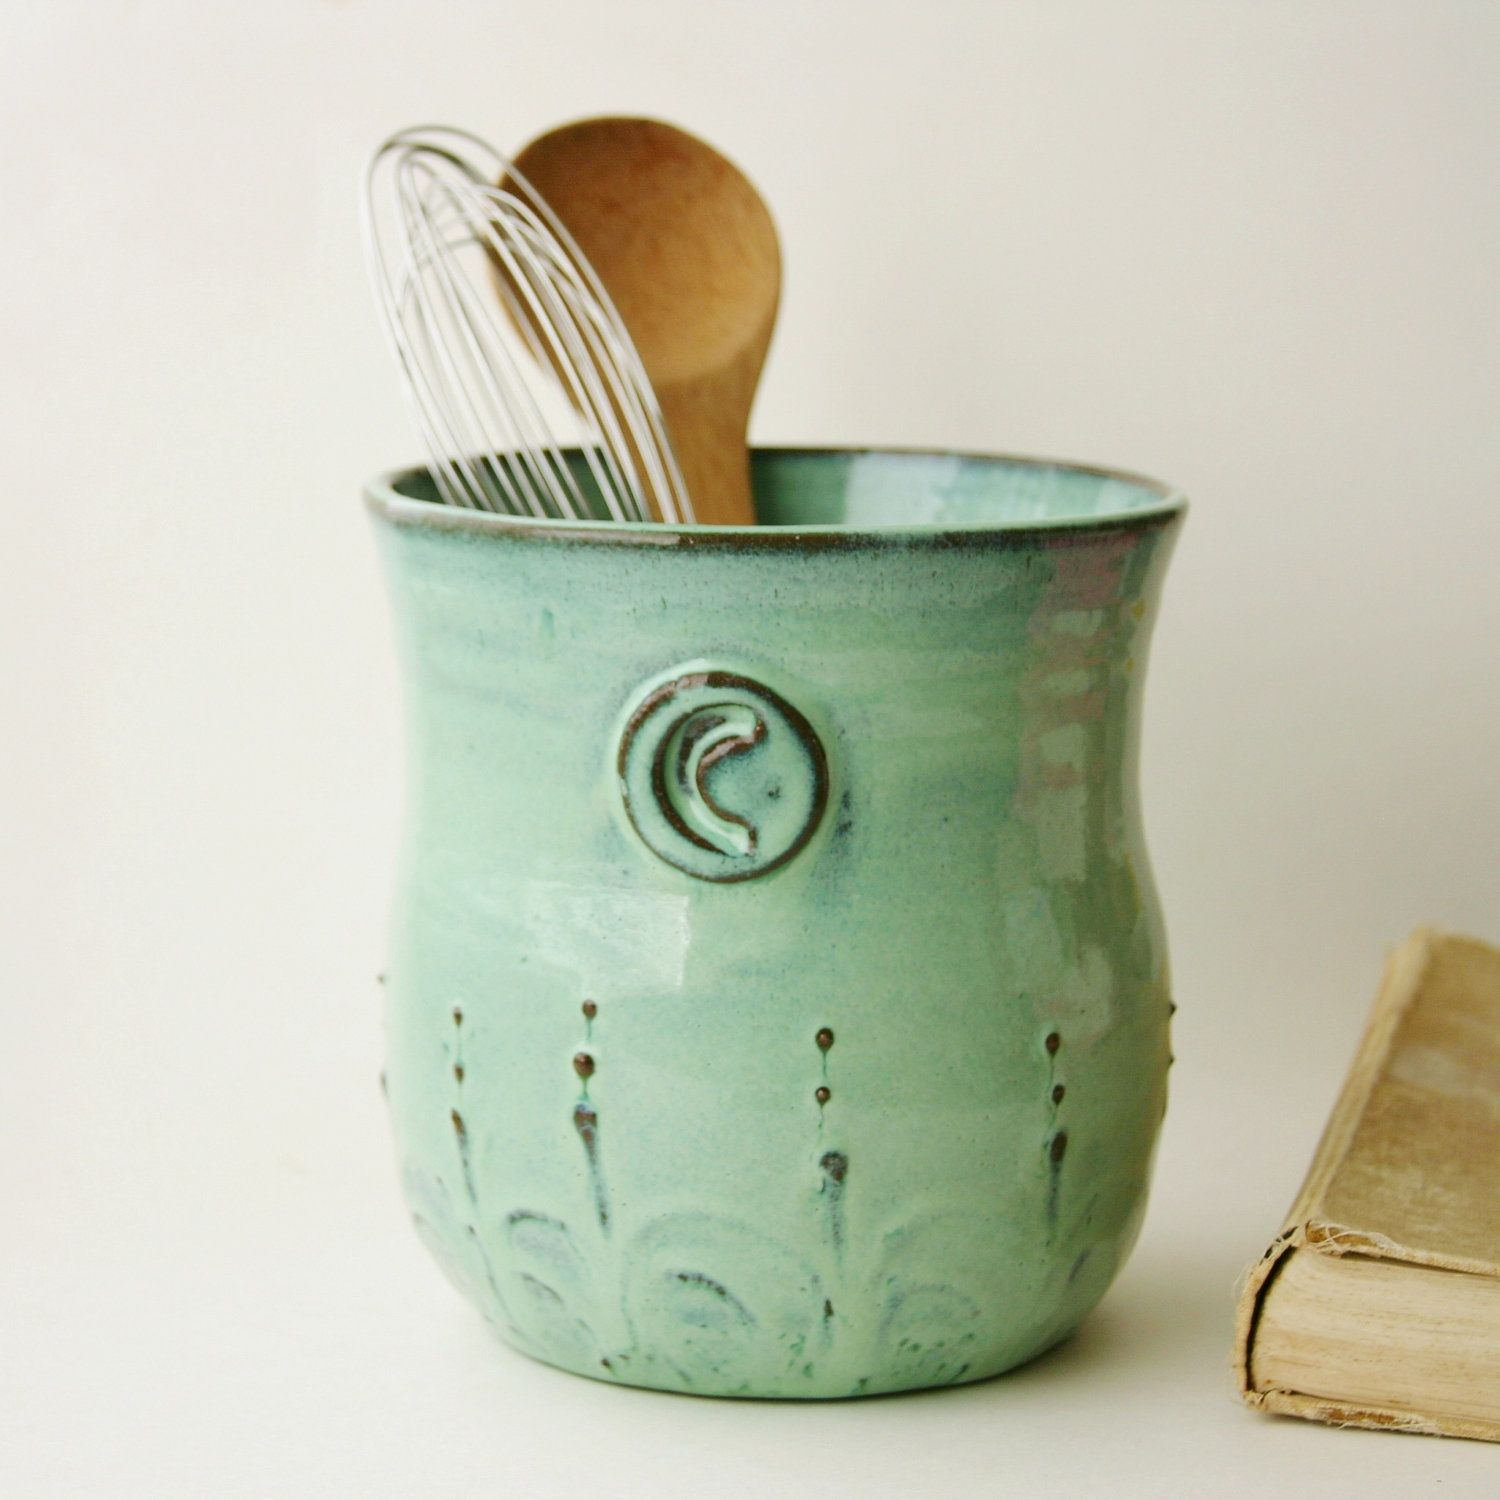 Monogram Kitchen Utensil Holder Aqua Mist Large Size French Country Home Decor Made To